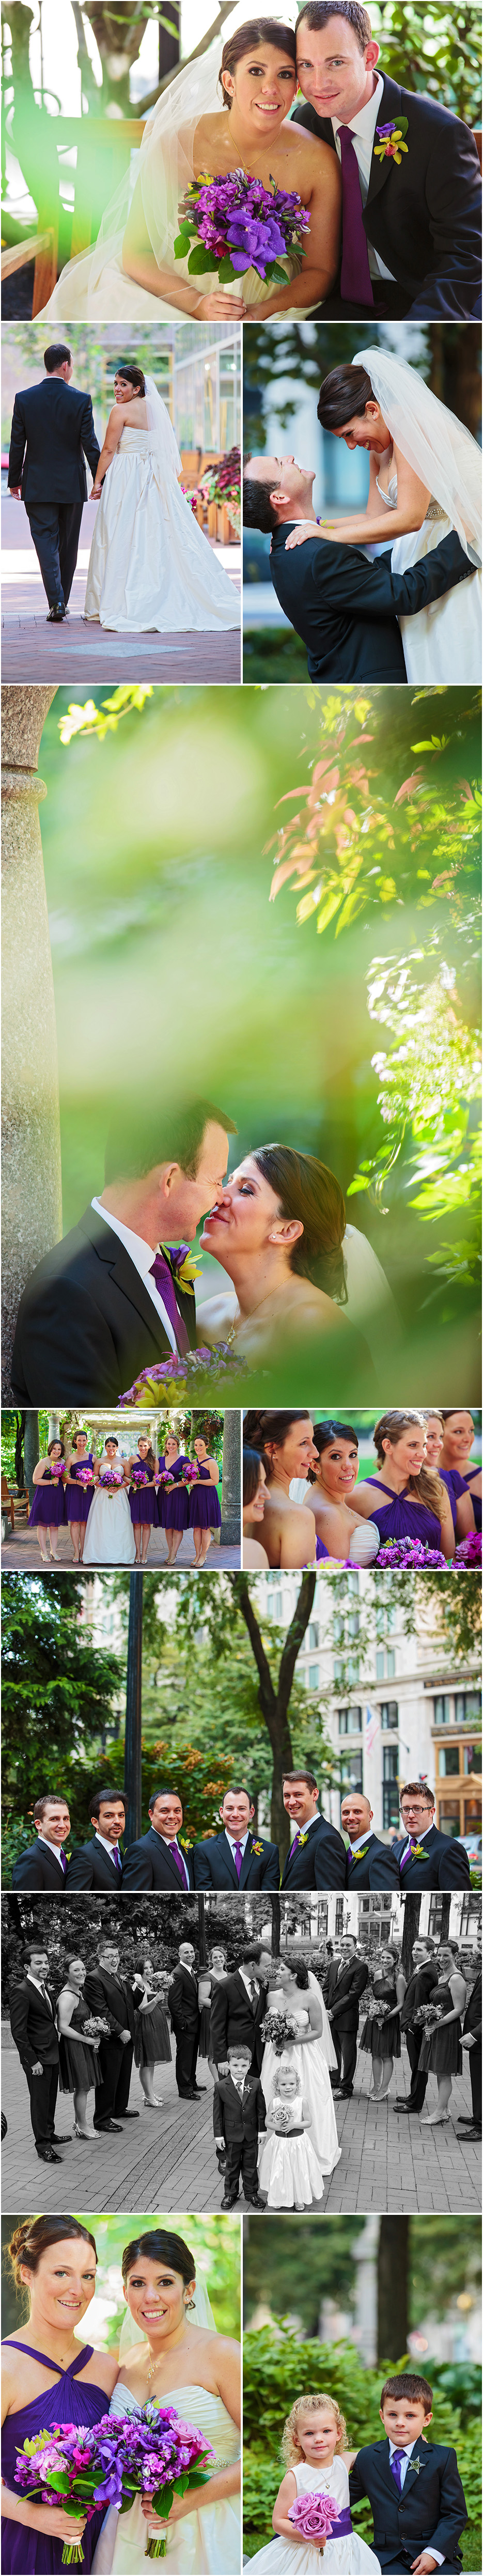 NEW ENGLAND WEDDING PHOTOGRAPHY